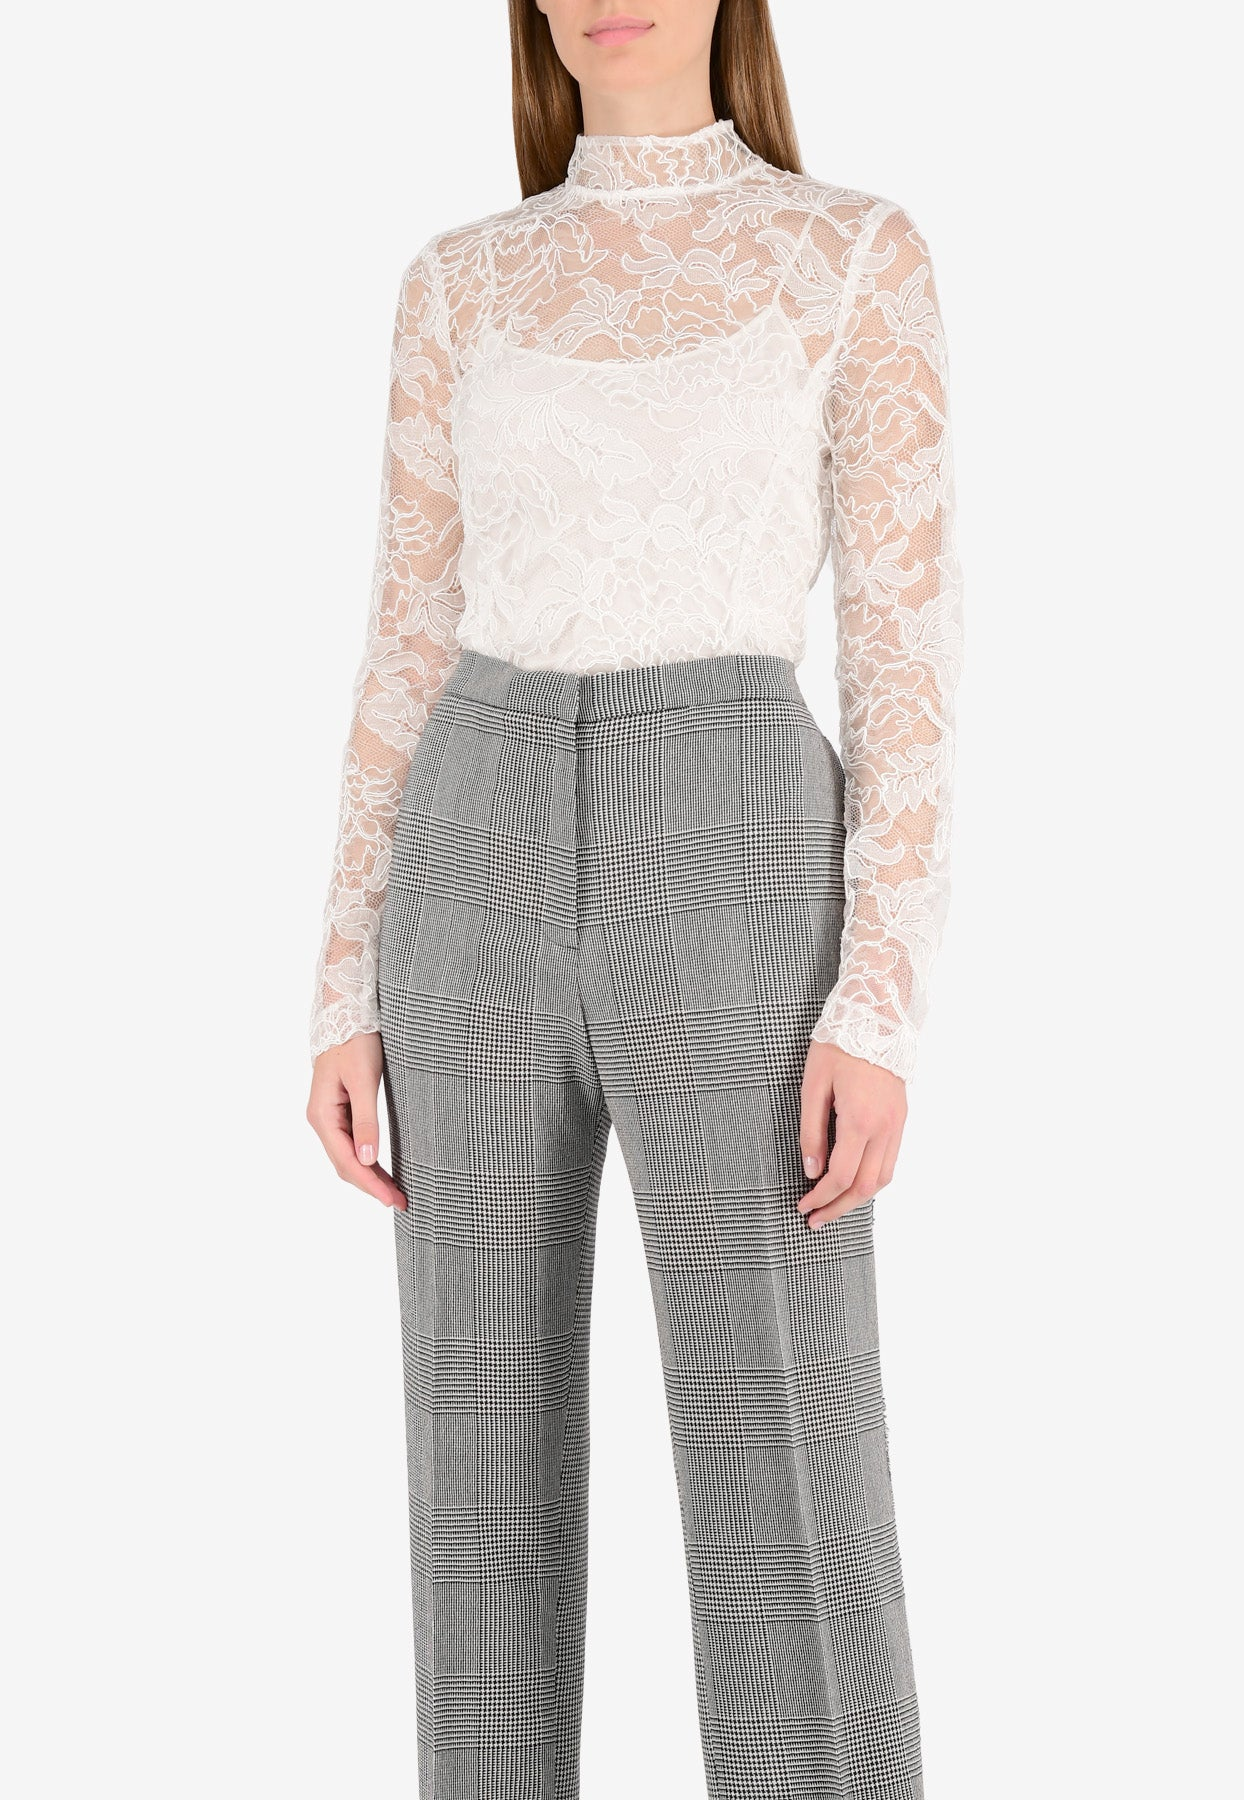 Bibhu Mohapatra High-neck Lace Top In White